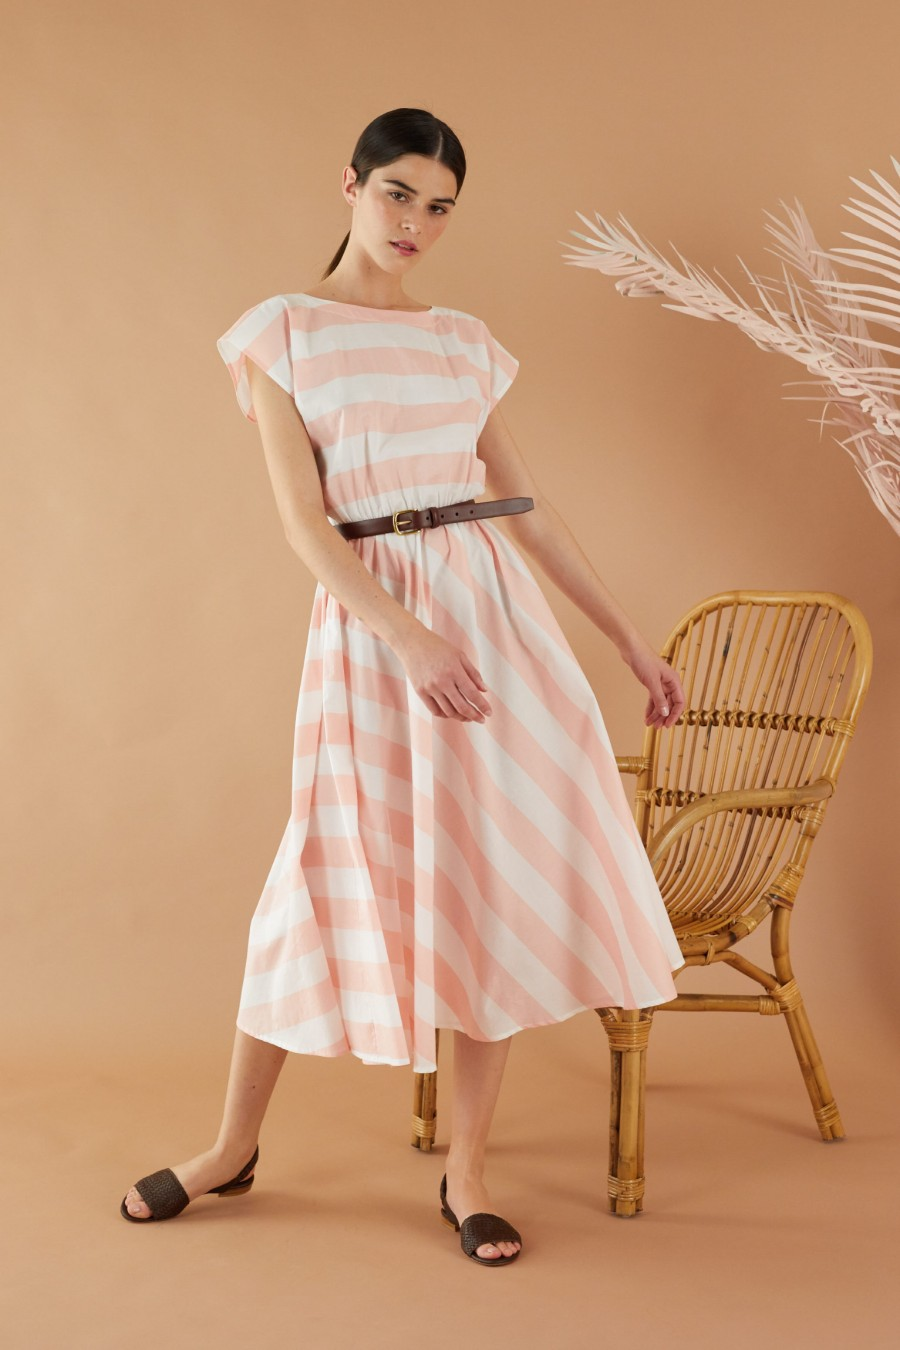 Summer Lazzari dress